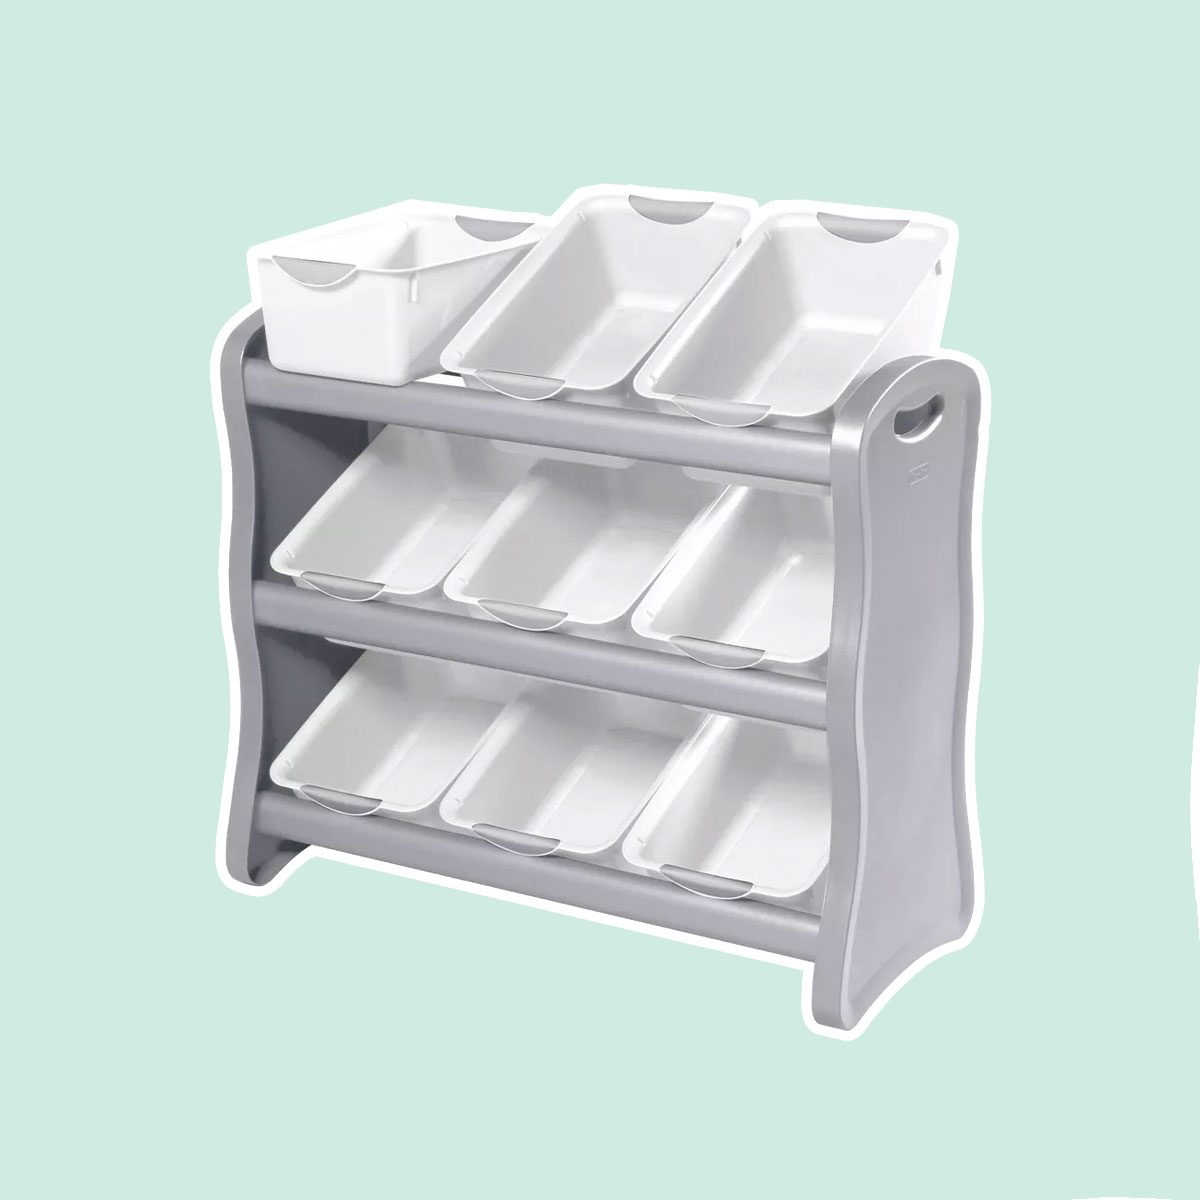 Sterilite 9 Bin Storage Rack with Handles Gray